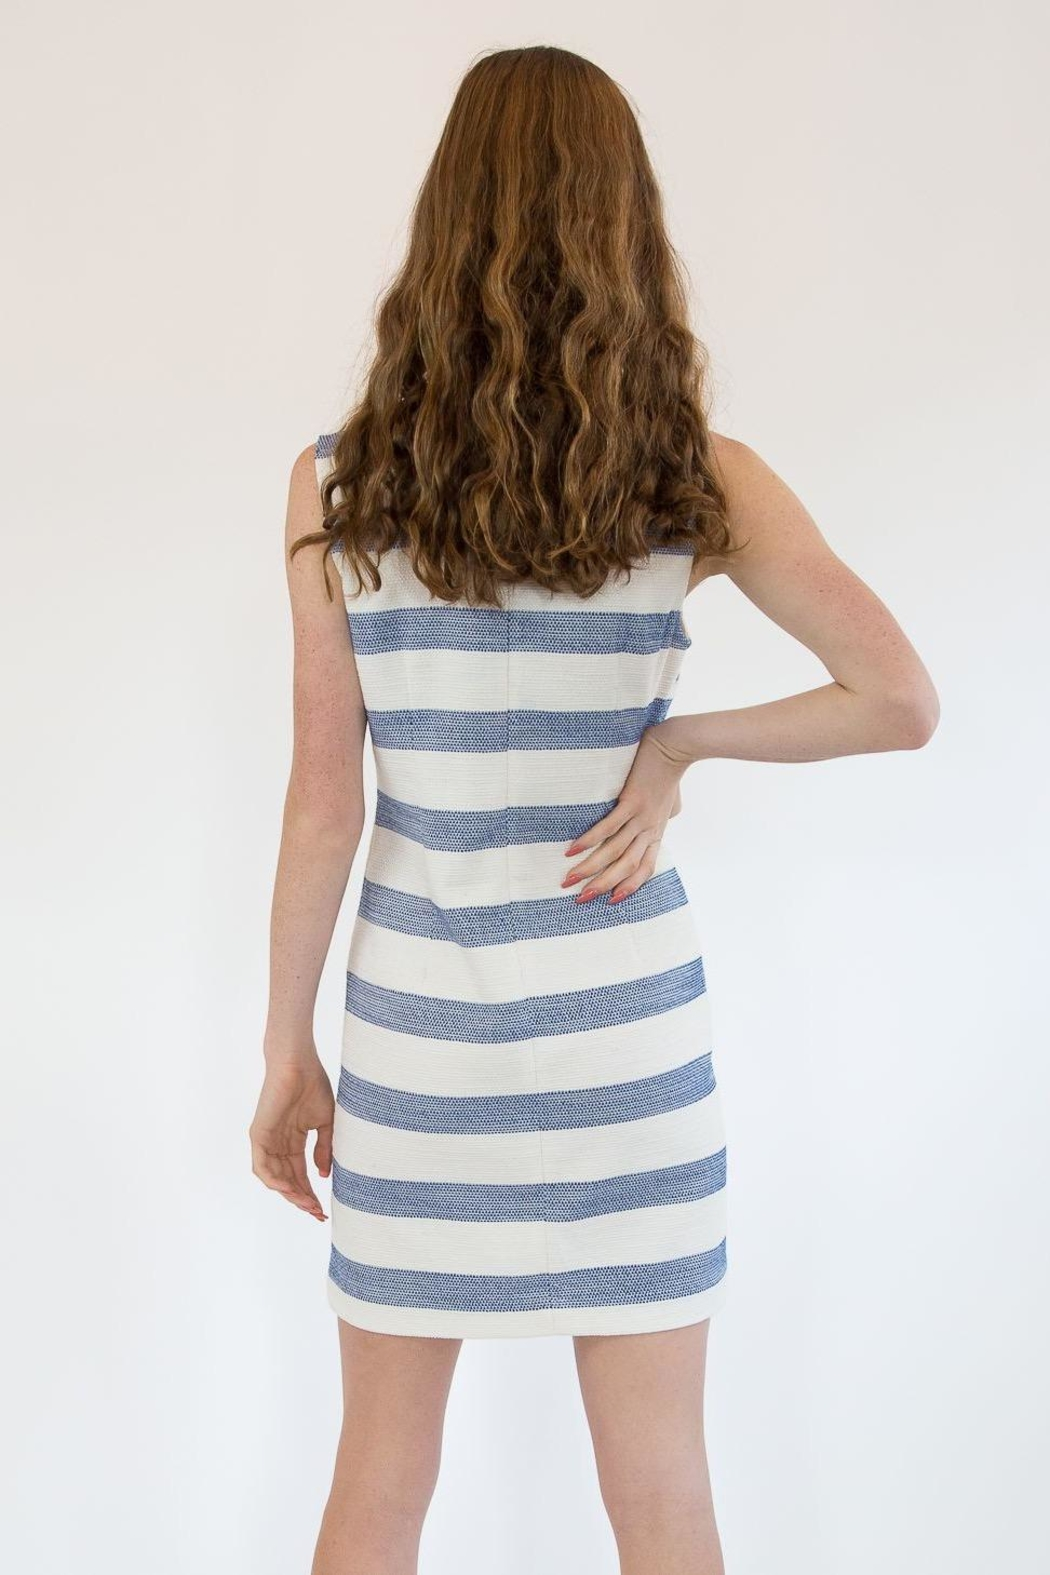 Southern Tide Hallie Dress - Side Cropped Image